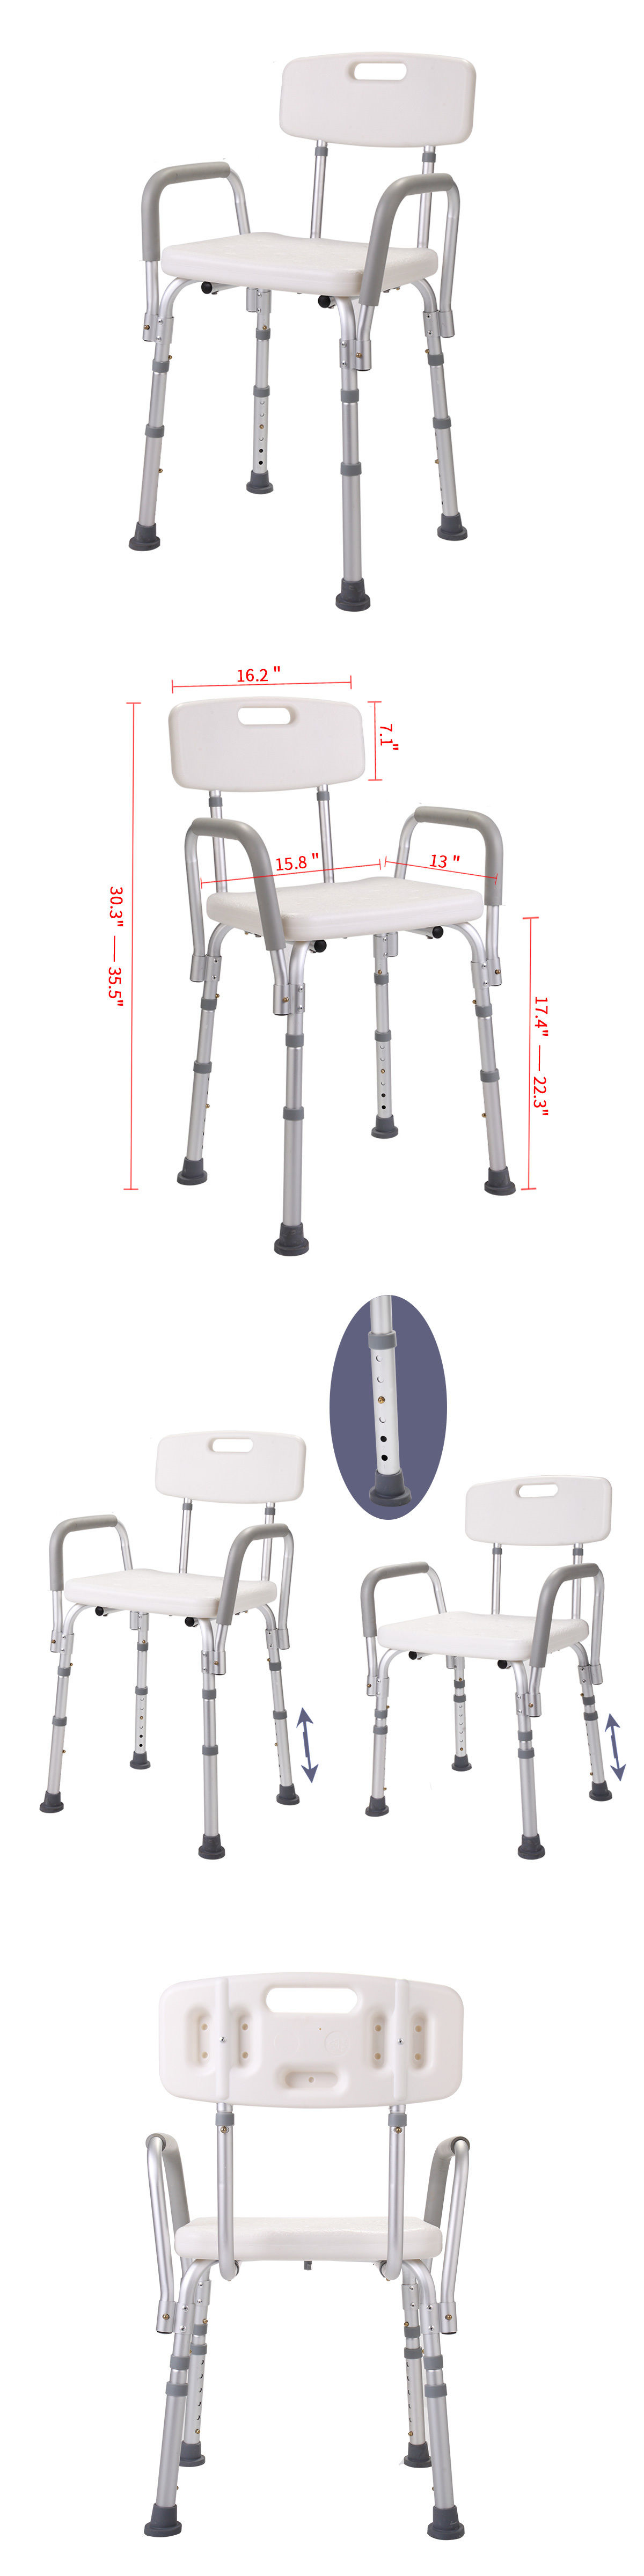 Shower and Bath Seats: Height Adjustable Medical Shower Chair ...